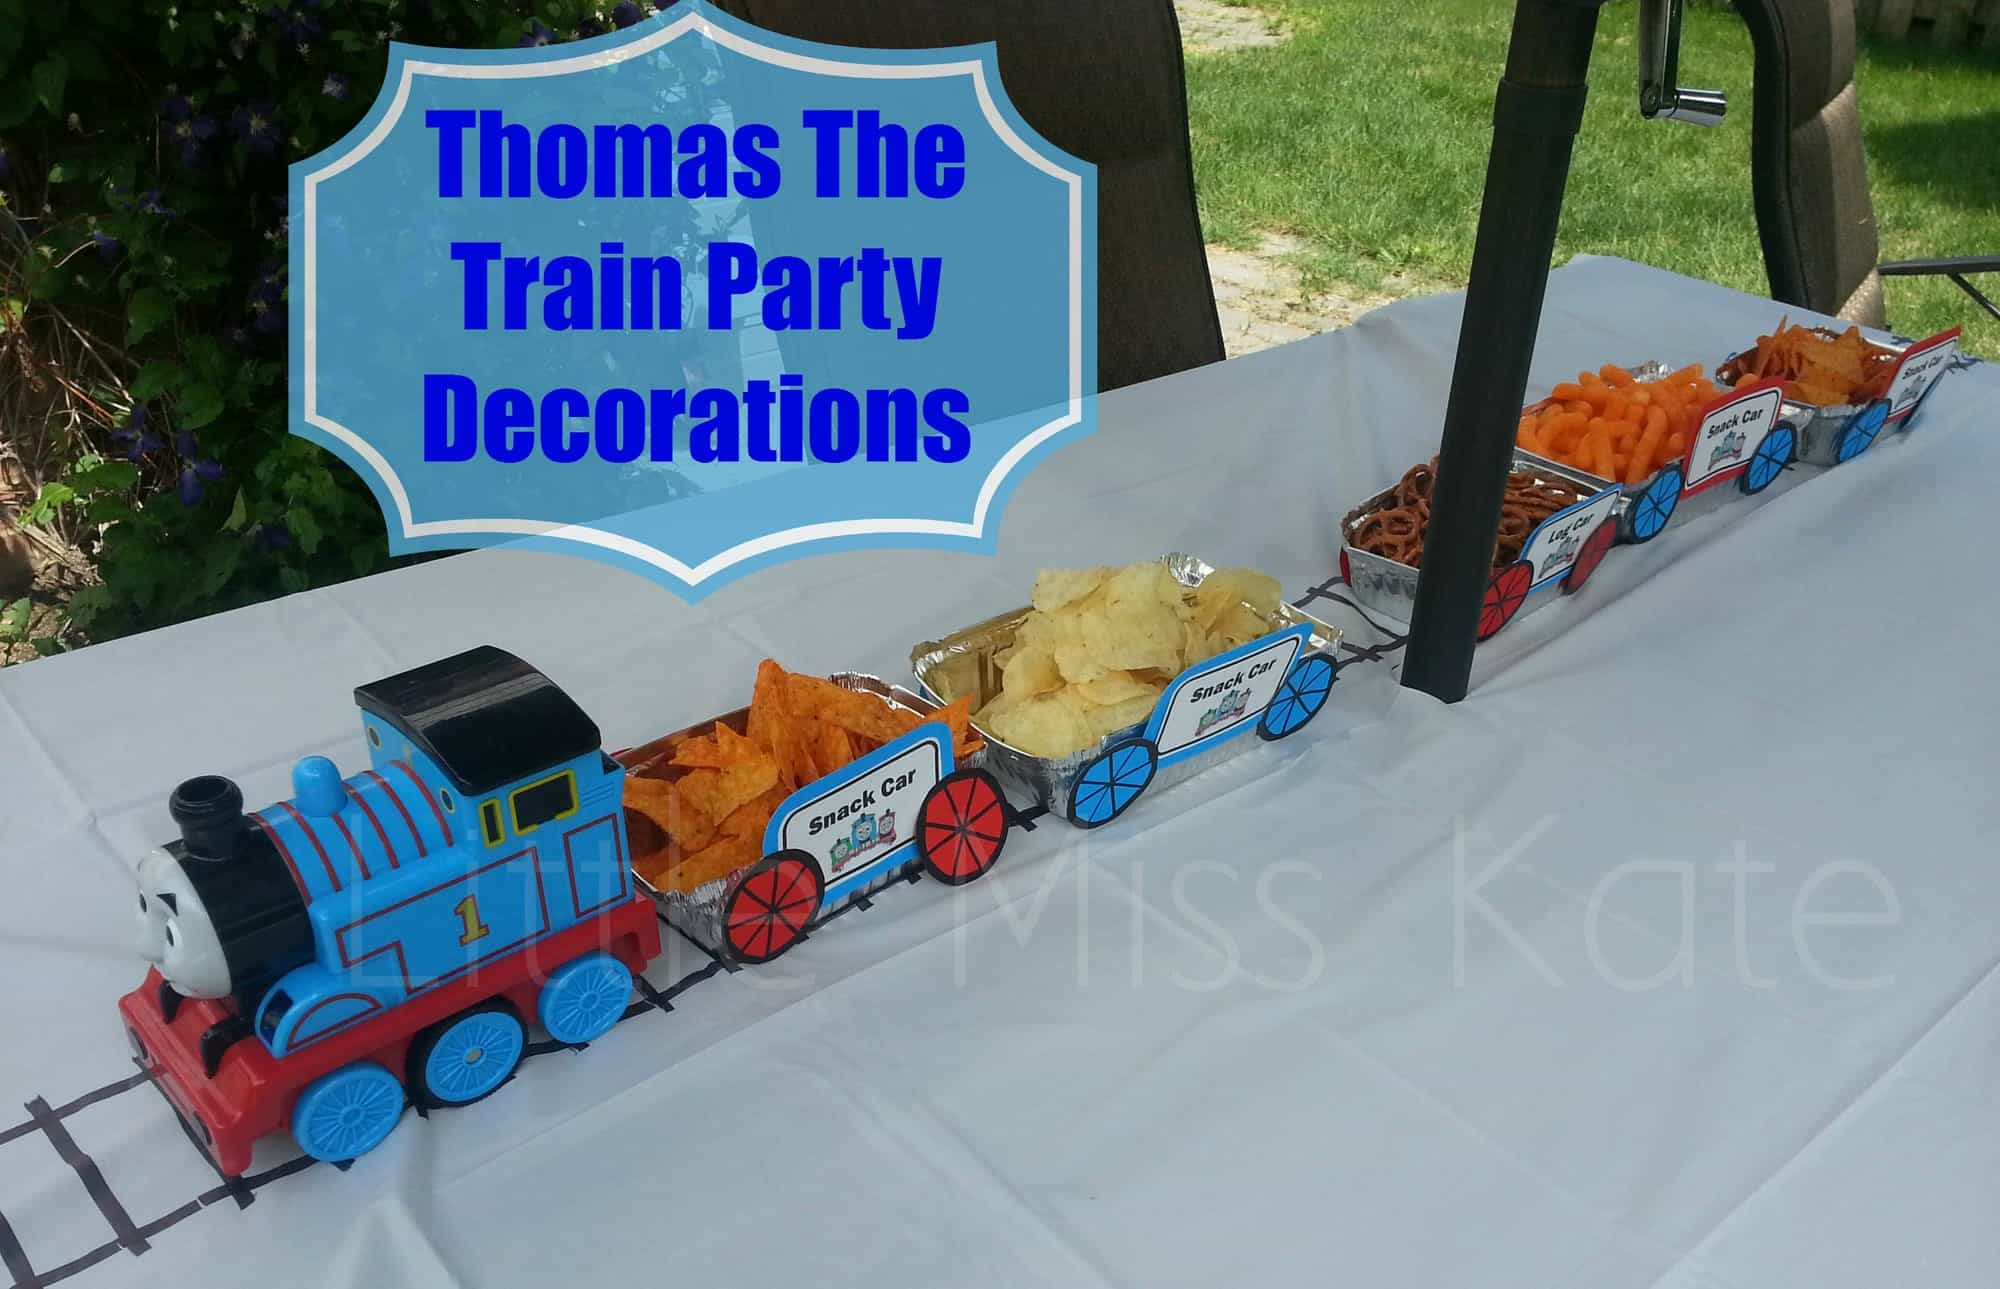 Thomas the Train Party decorations